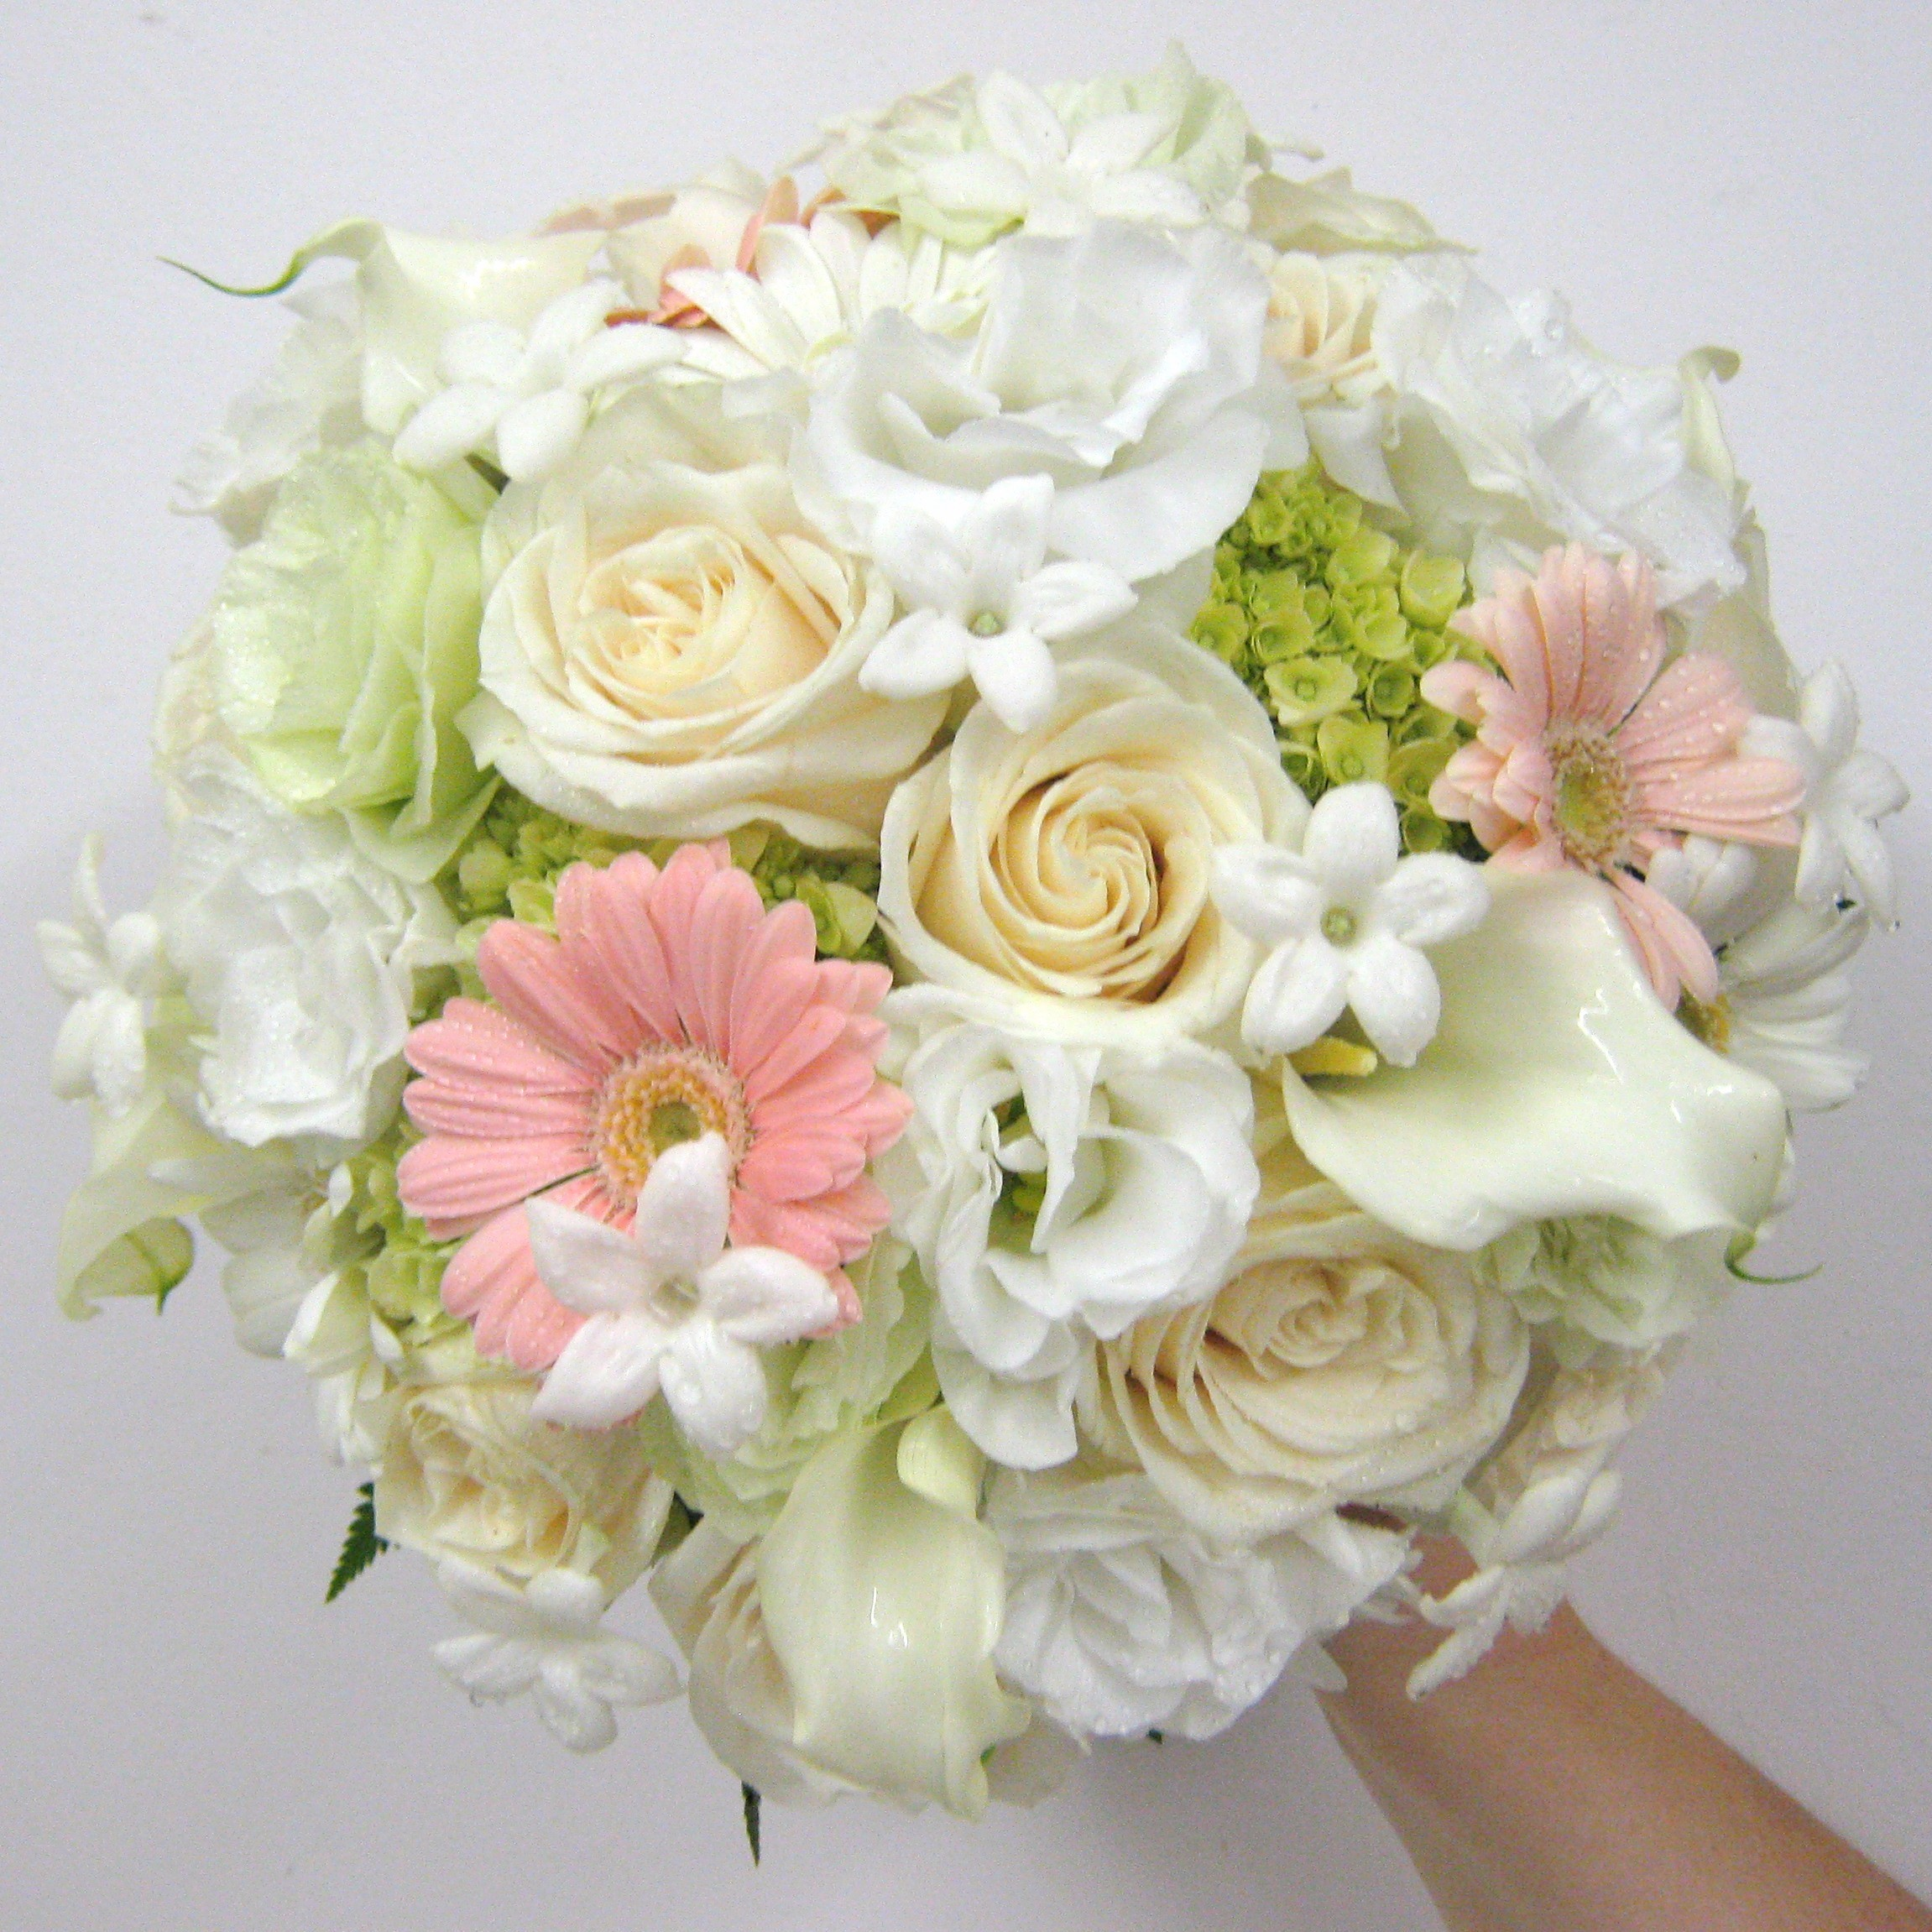 Real buffalo wedding flowers - Flowers good luck bridal bouquet ...